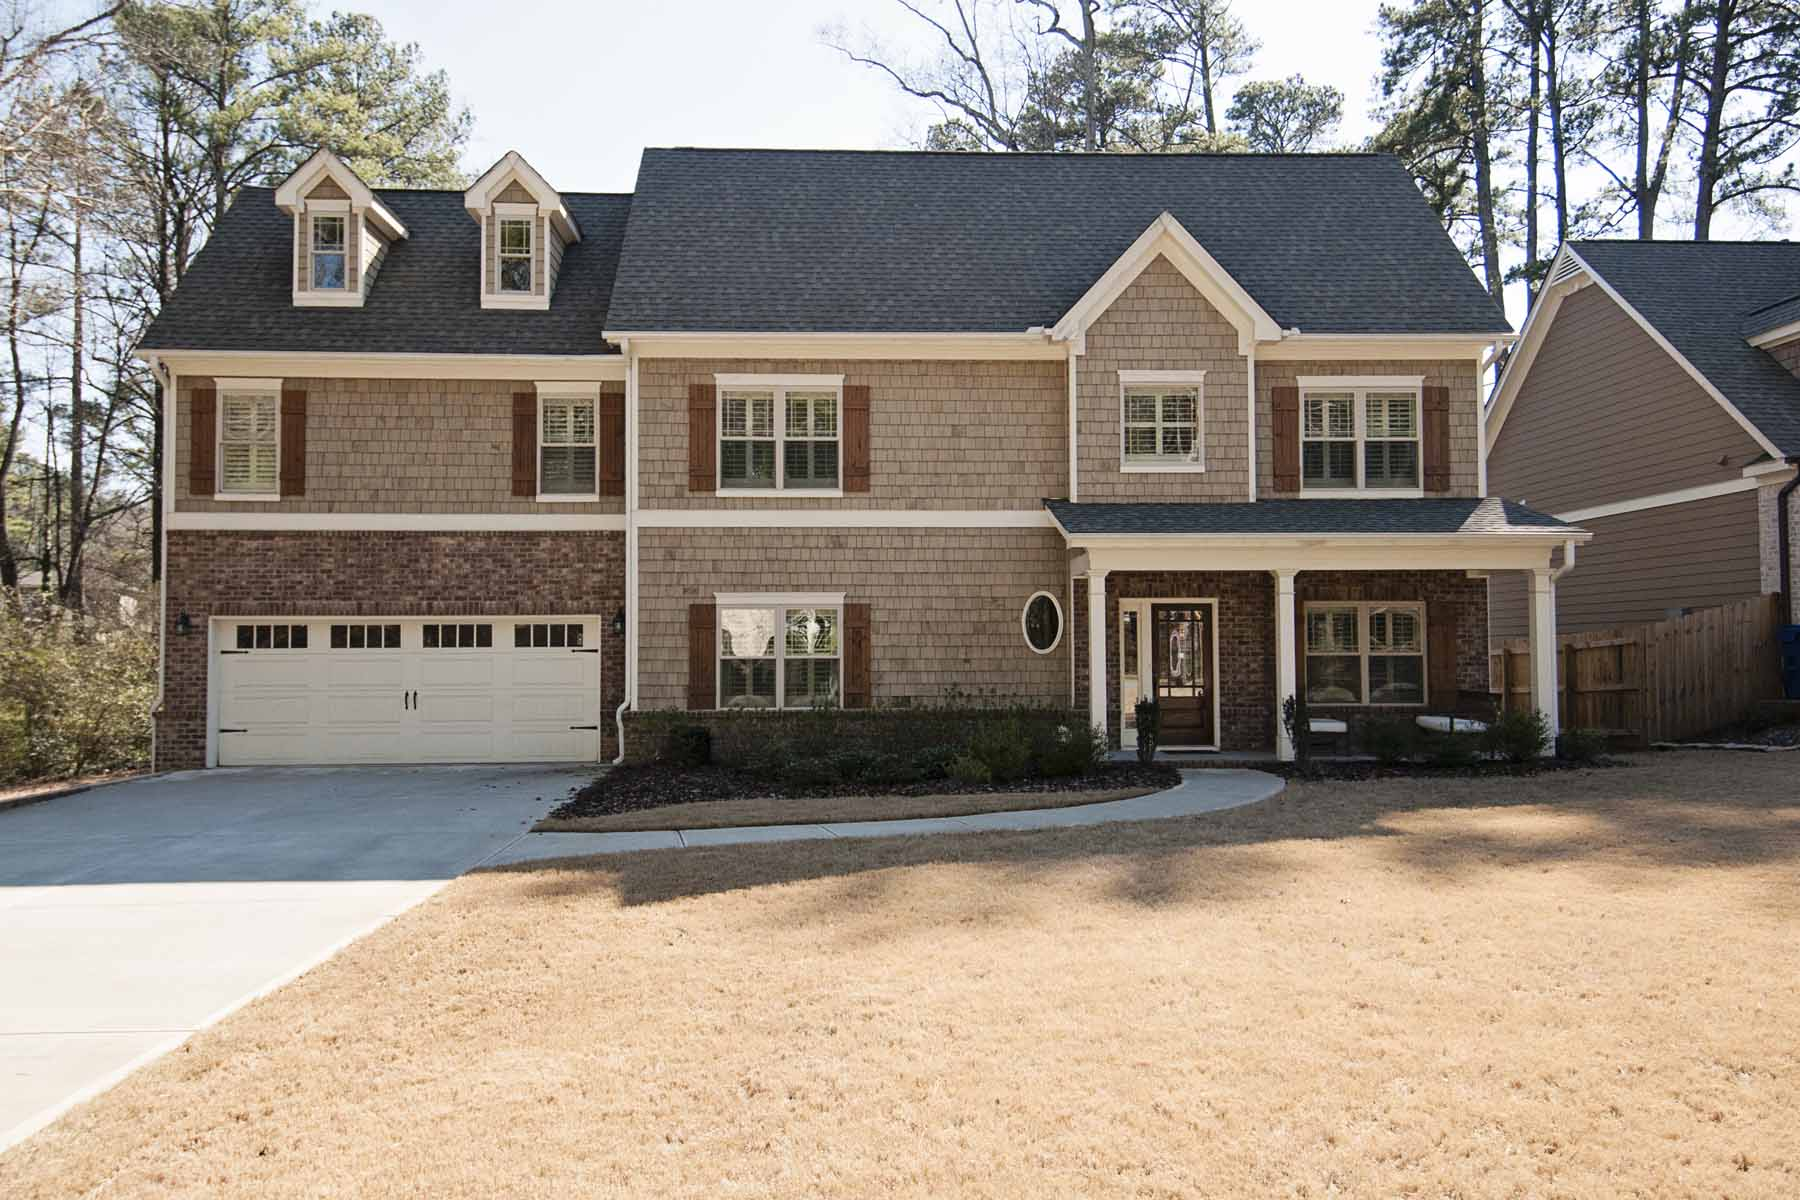 Vivienda unifamiliar por un Venta en Great Location! Incredible Backyard! 1813 8th Street Ashford Park, Atlanta, Georgia, 30341 Estados Unidos